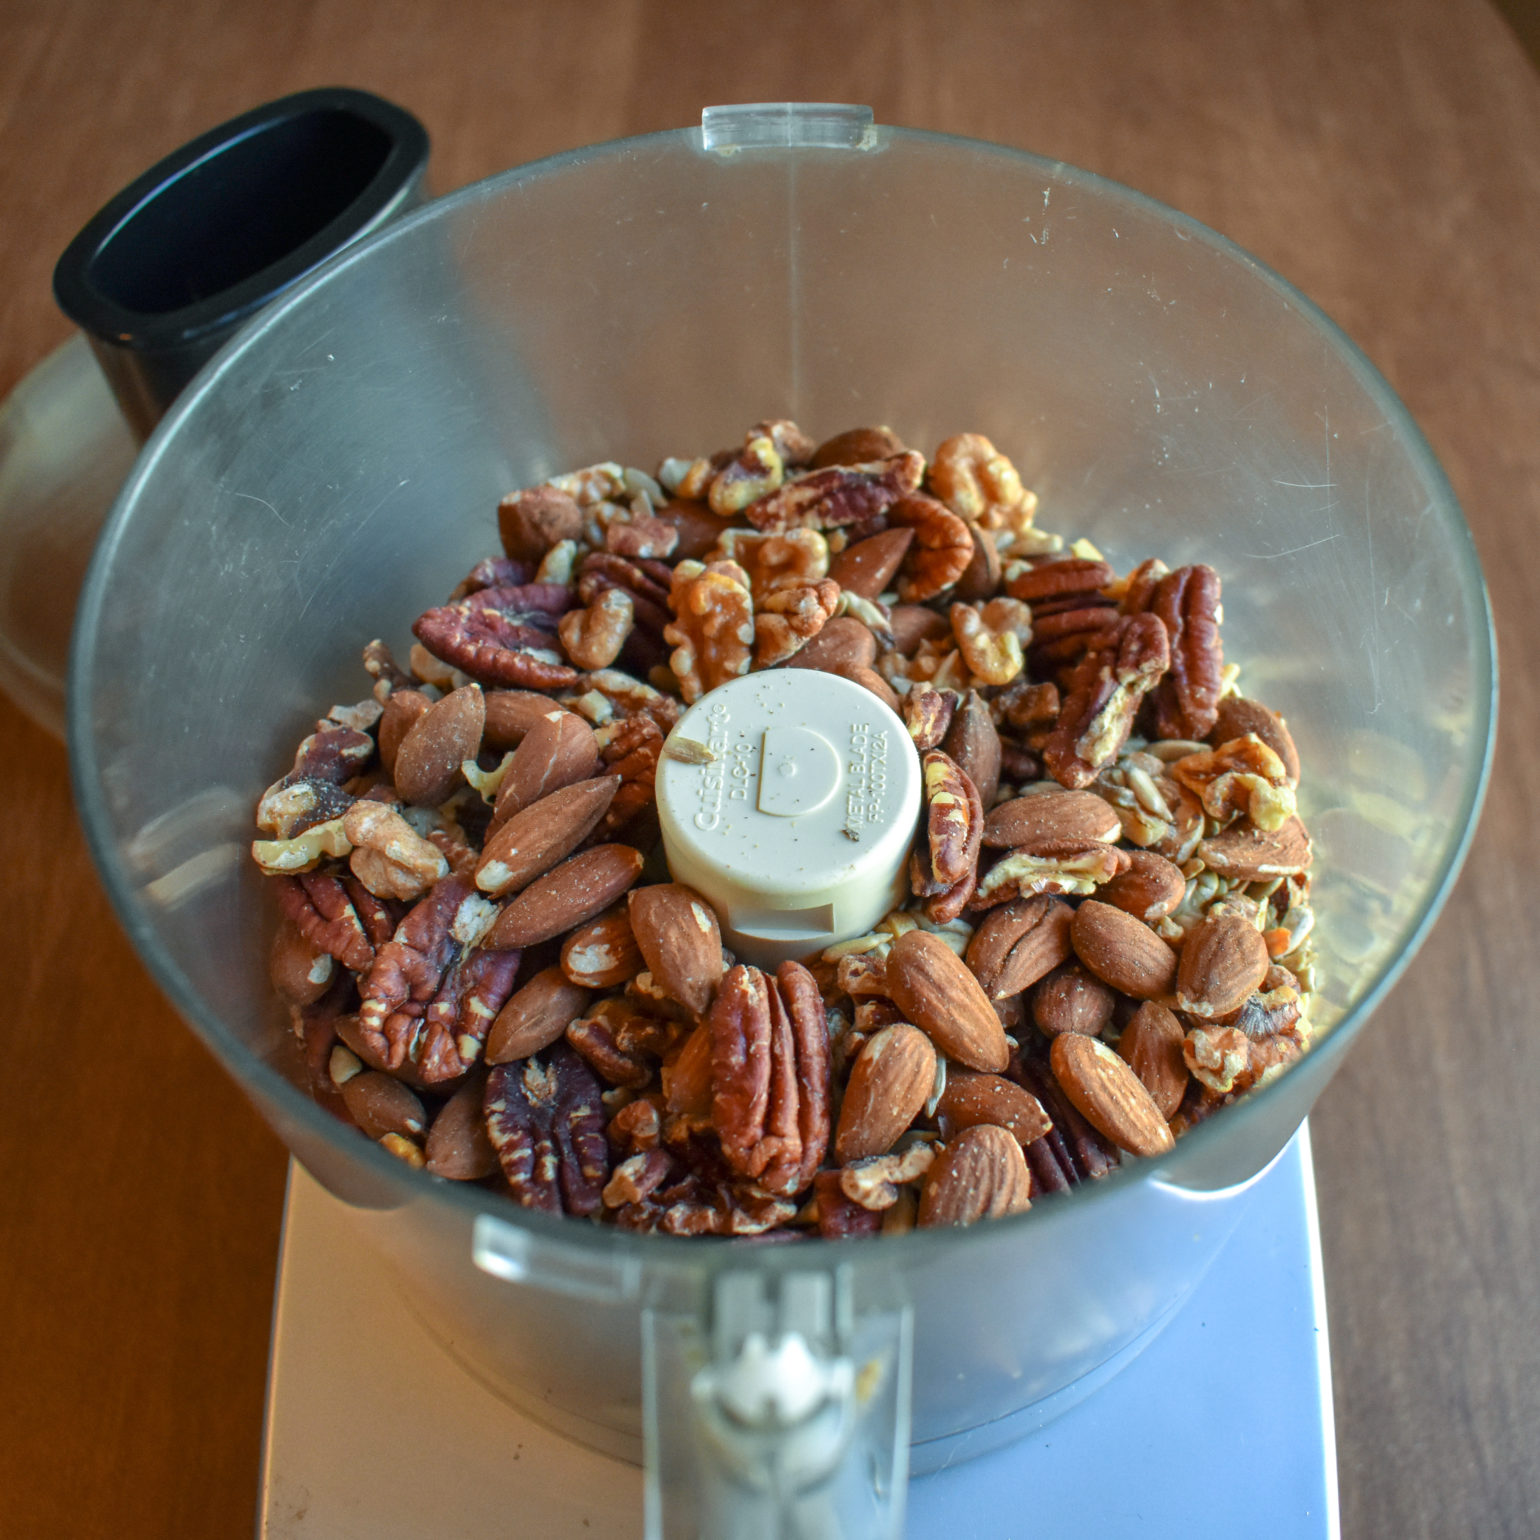 Blending nuts for homemade nut butter